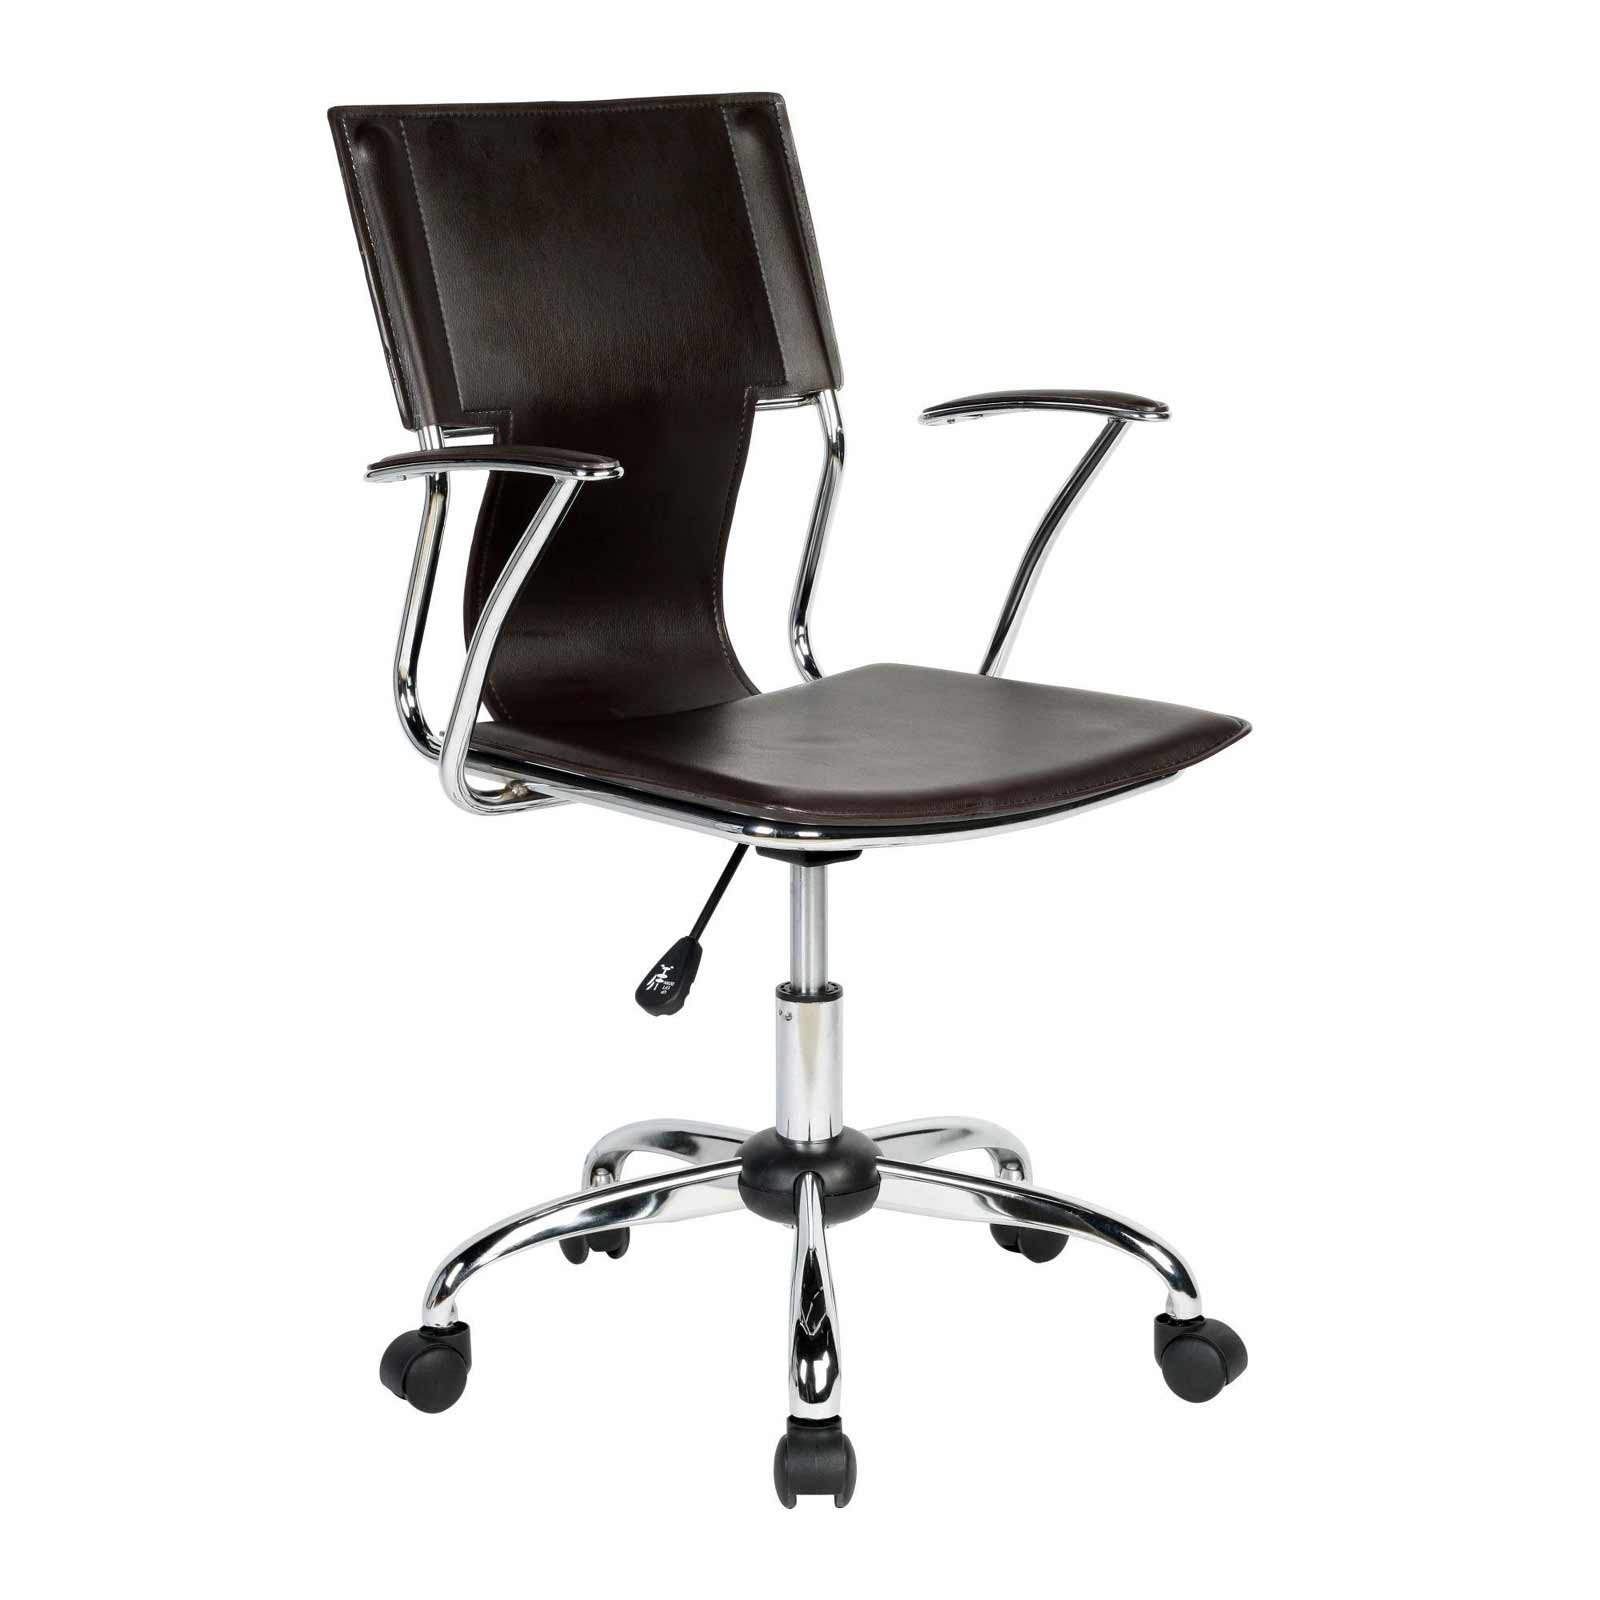 Chicago Stylish Director Office Chair Design